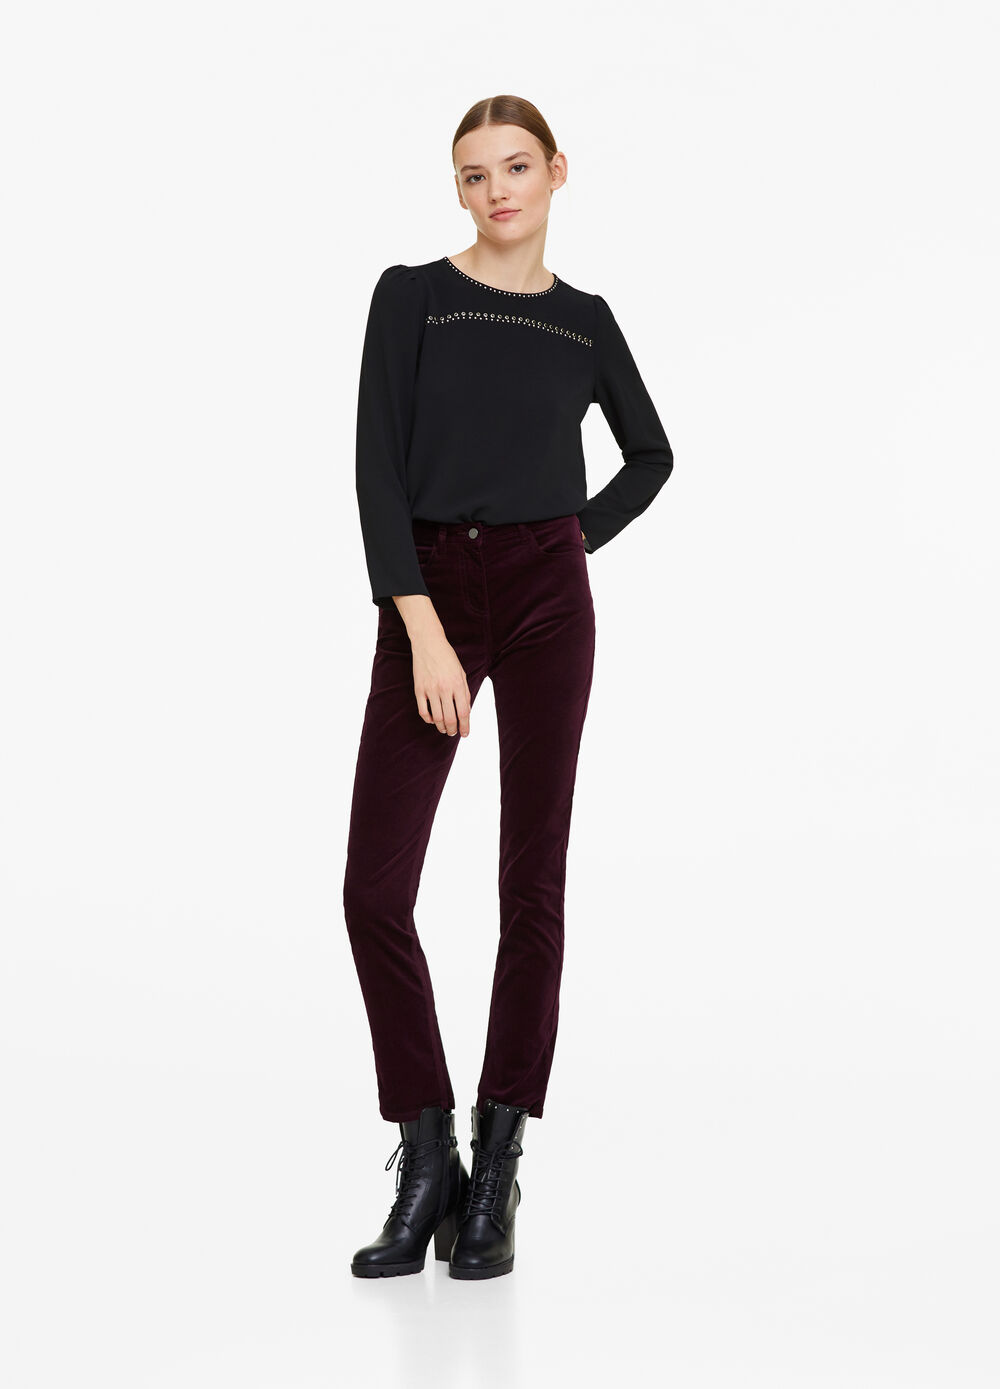 5-pocket velvet trousers